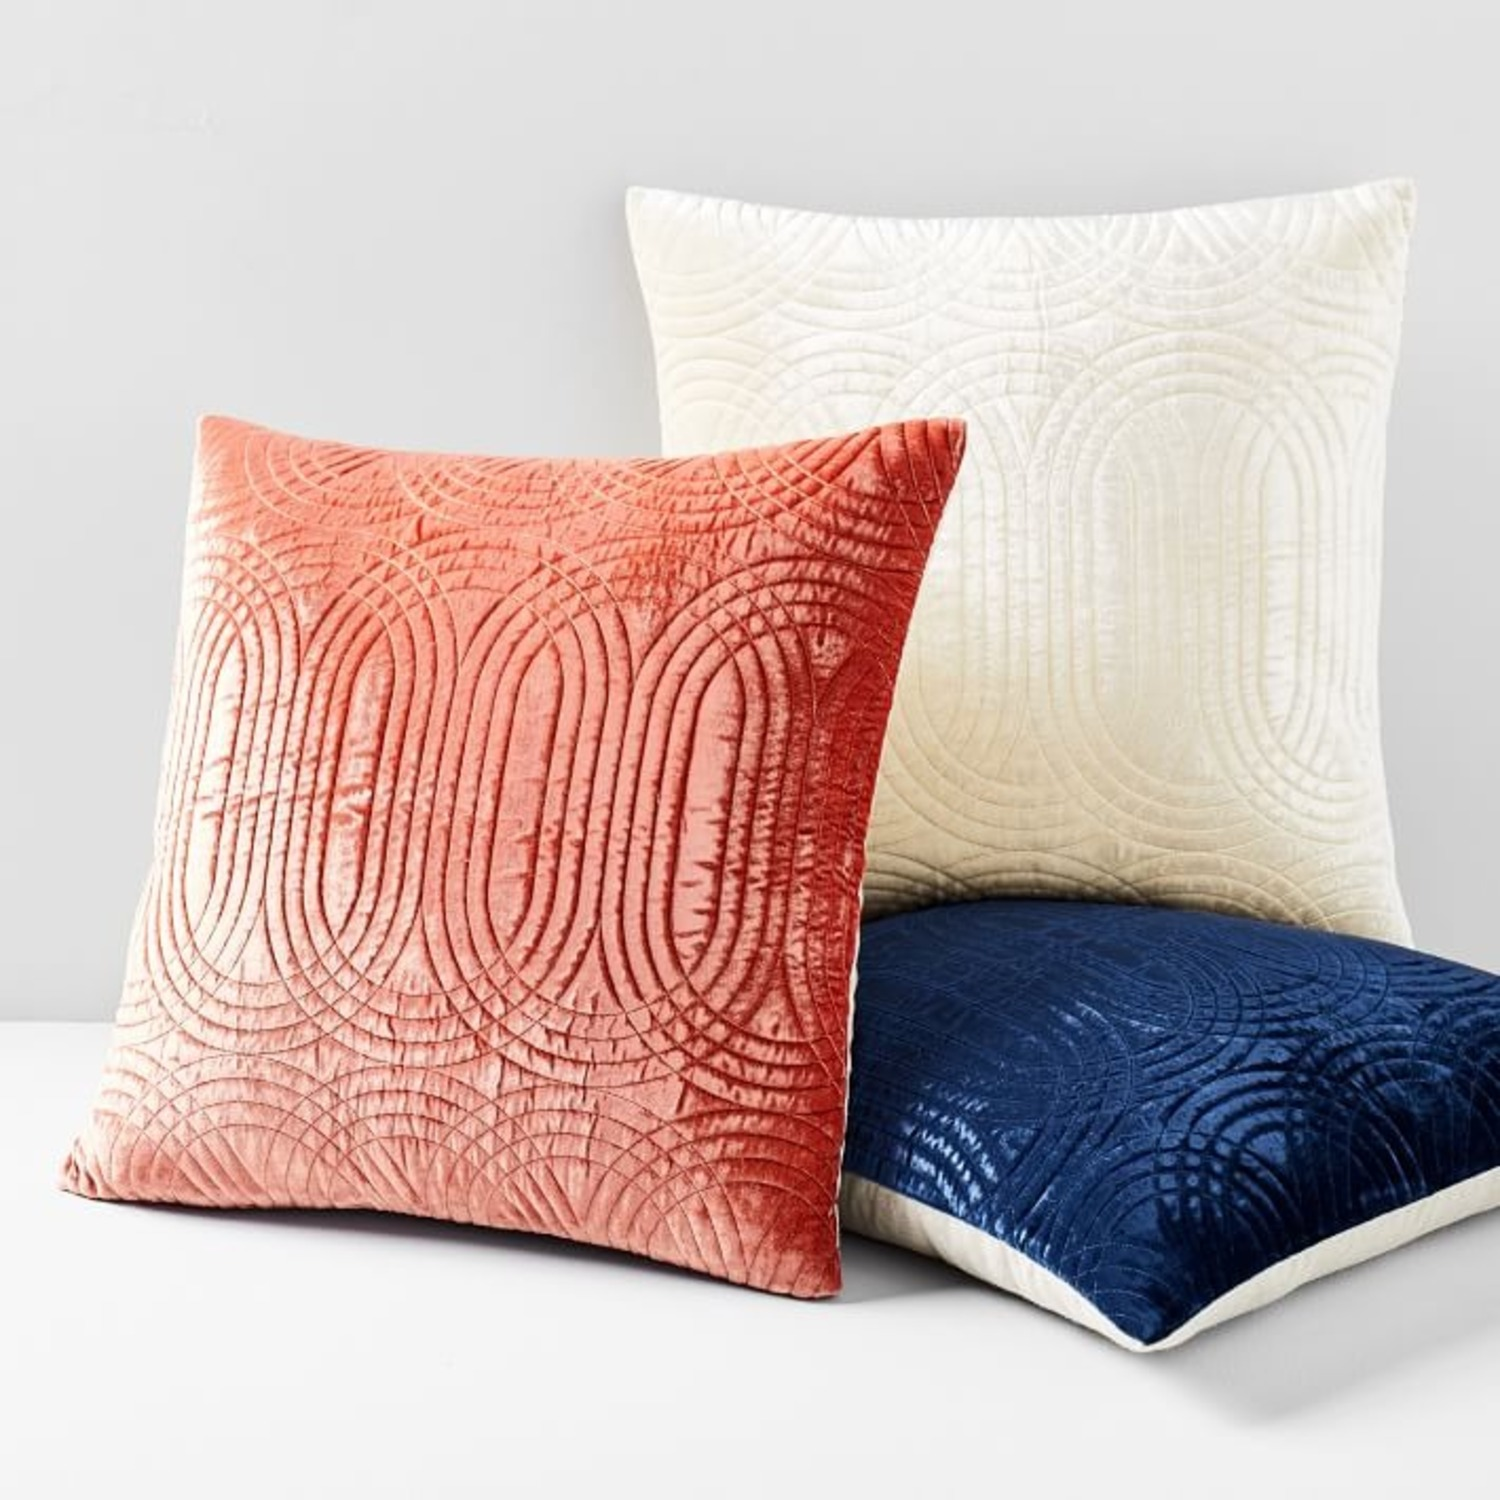 West Elm Lush Velvet Infinity Quilted Pillow - image-2